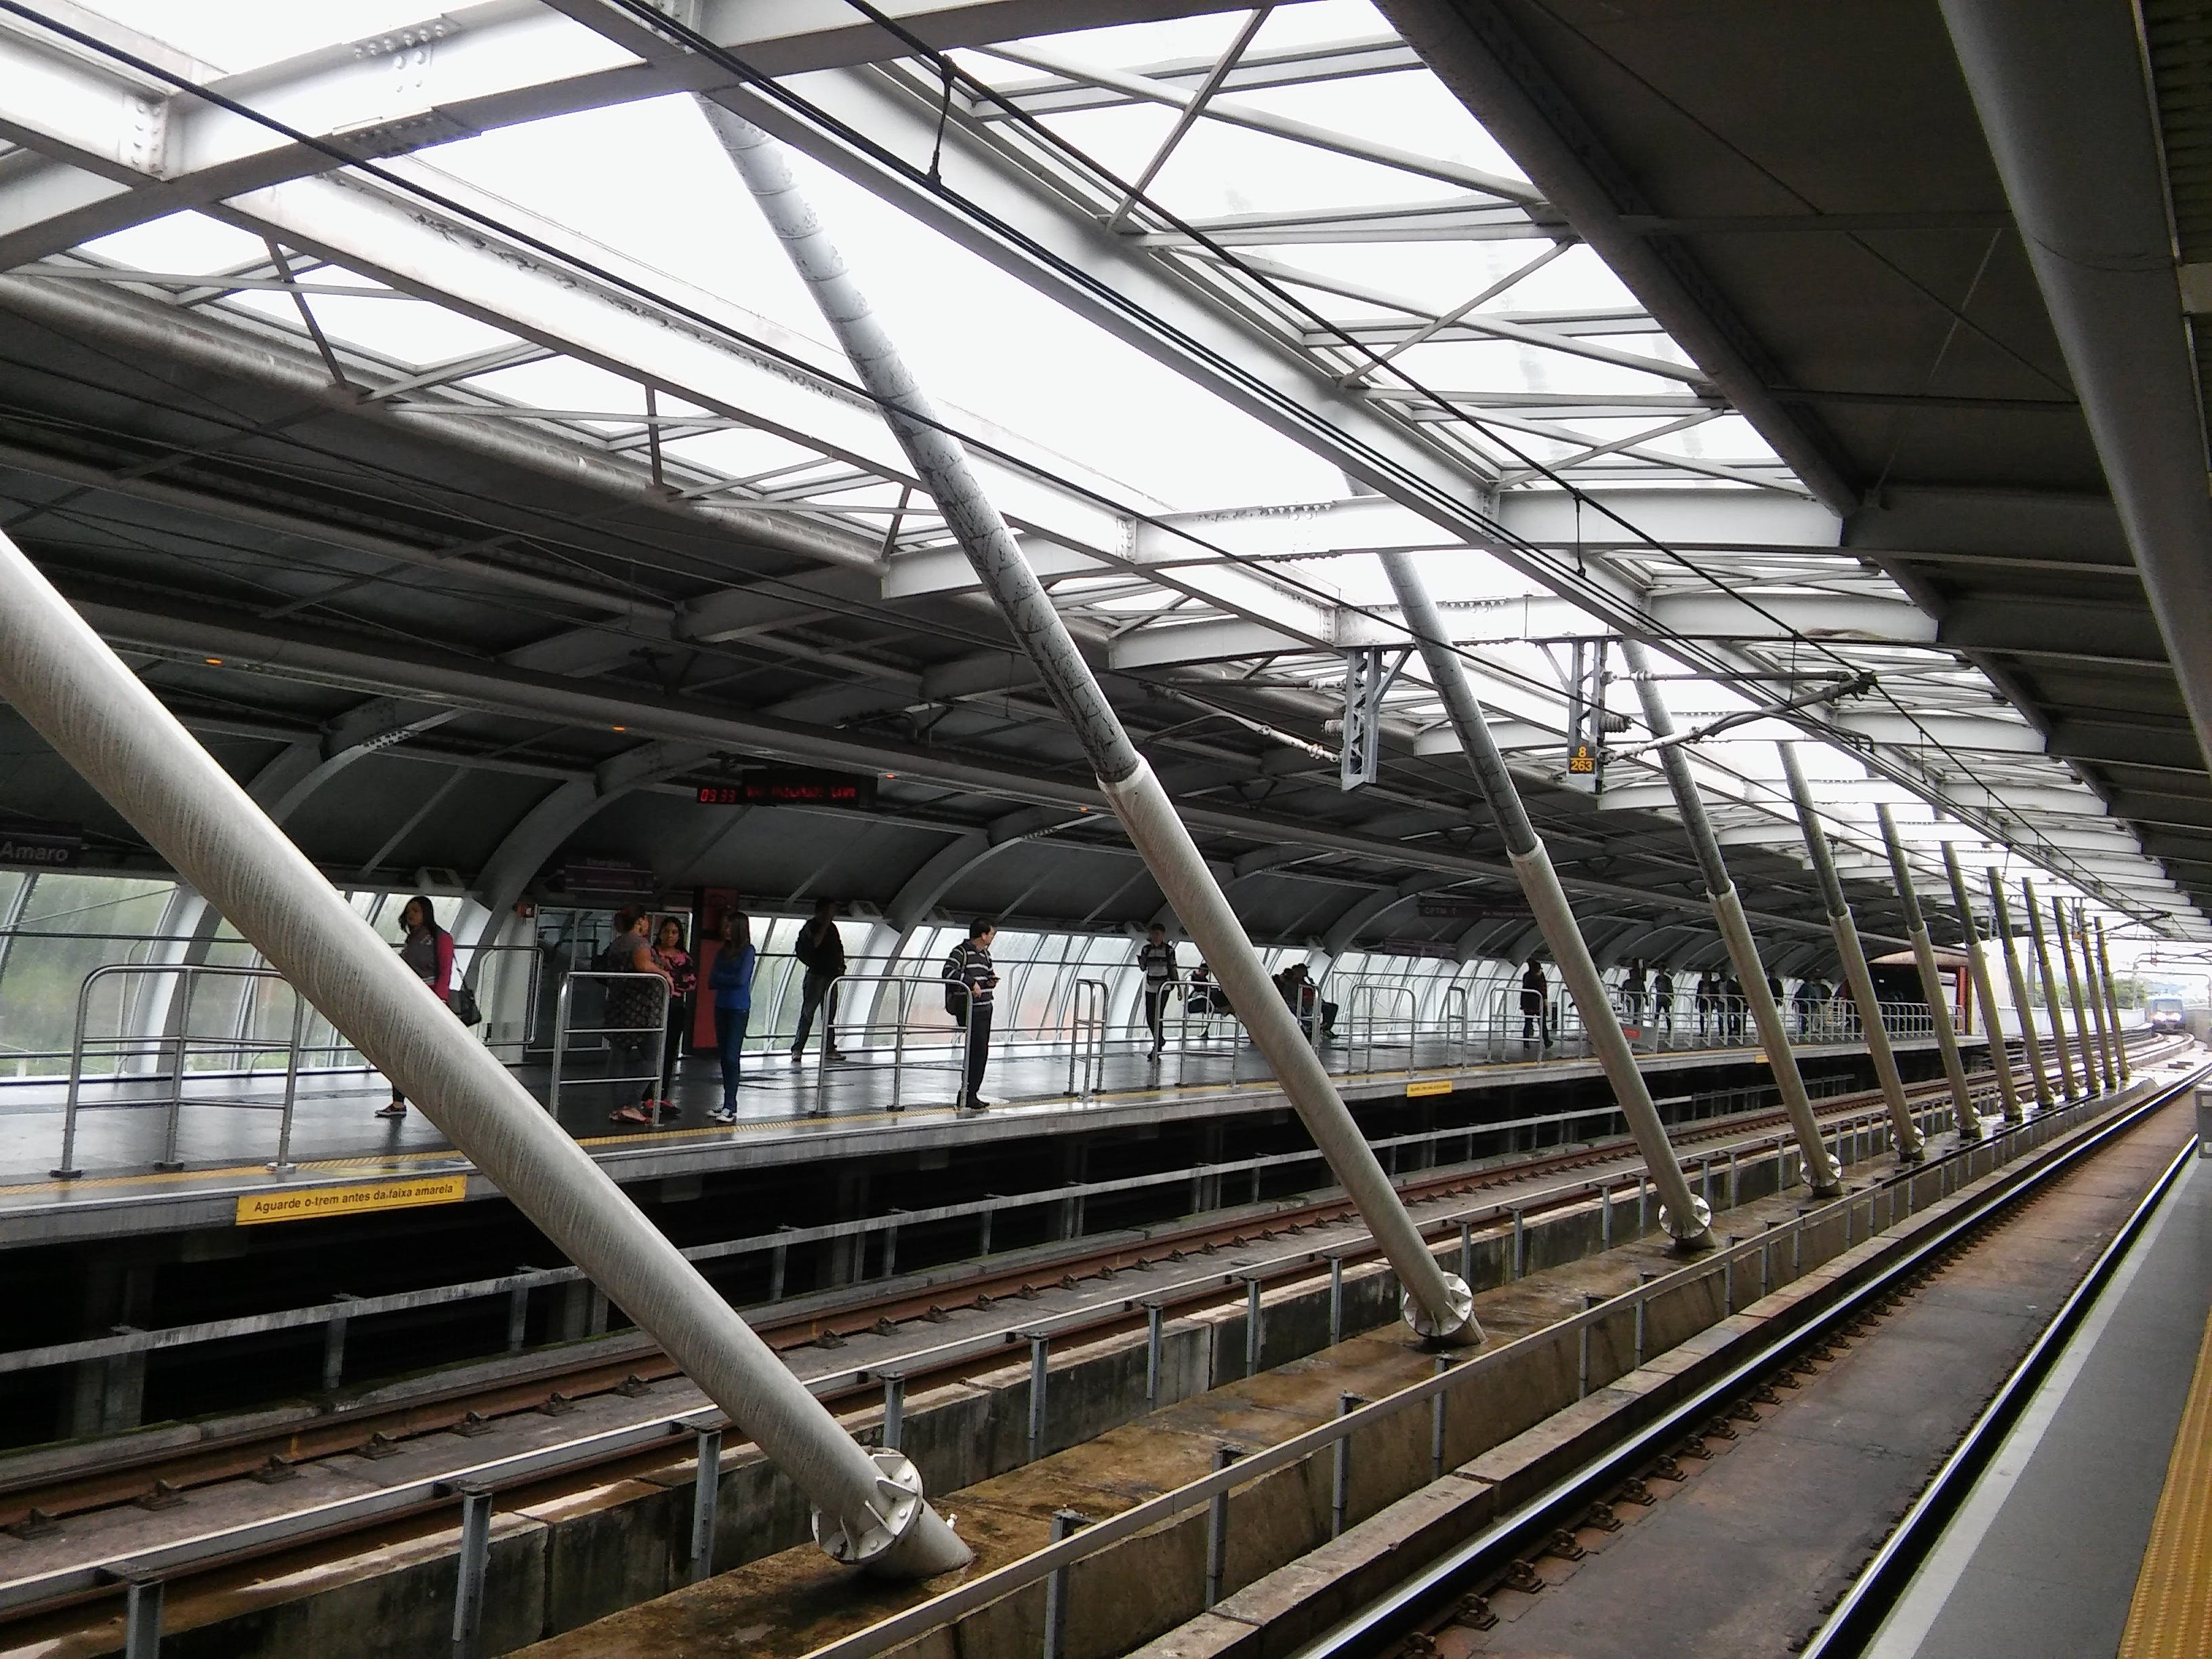 High Angle View of Elevated View of Railroad Station